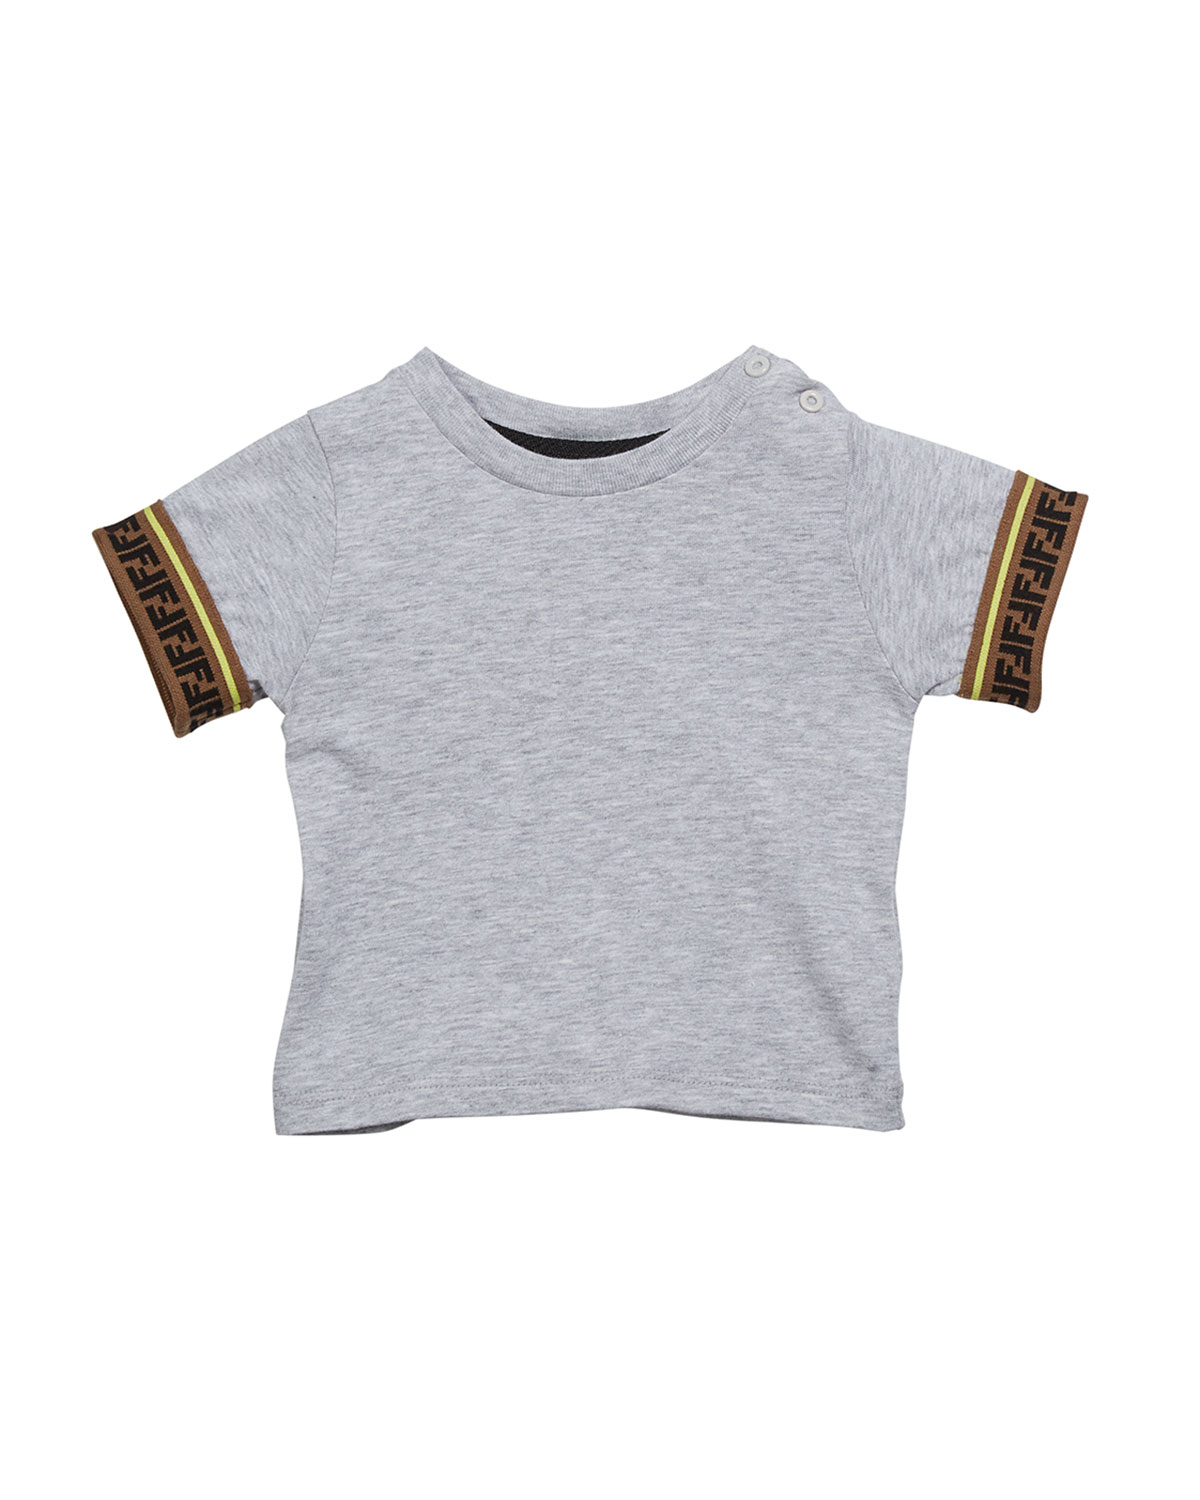 Boy's Short Sleeve T Shirt W/ Ff Taping, Size 12 24 Months by Fendi